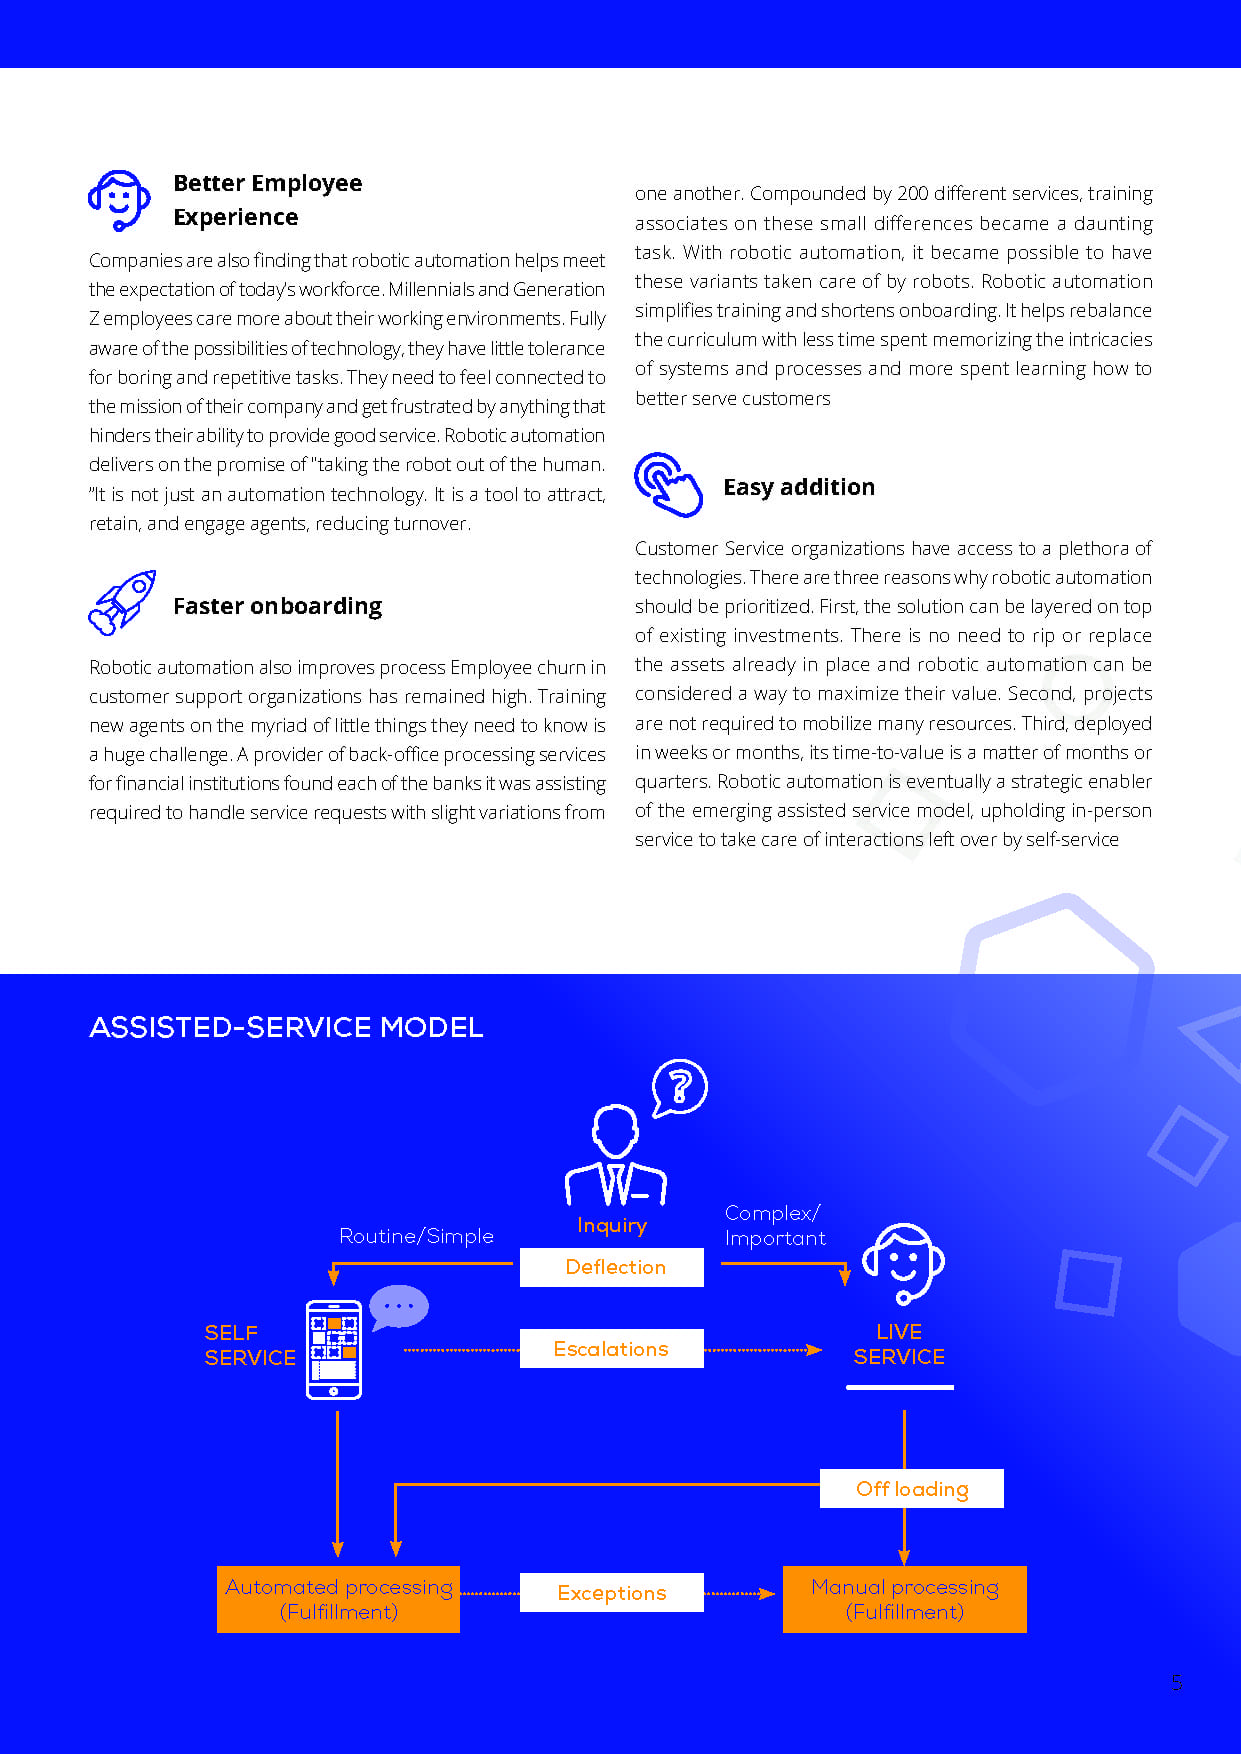 Whitepaper-The-Rise-of-Customer-Service-Robotic-Automation (1)_Page_05